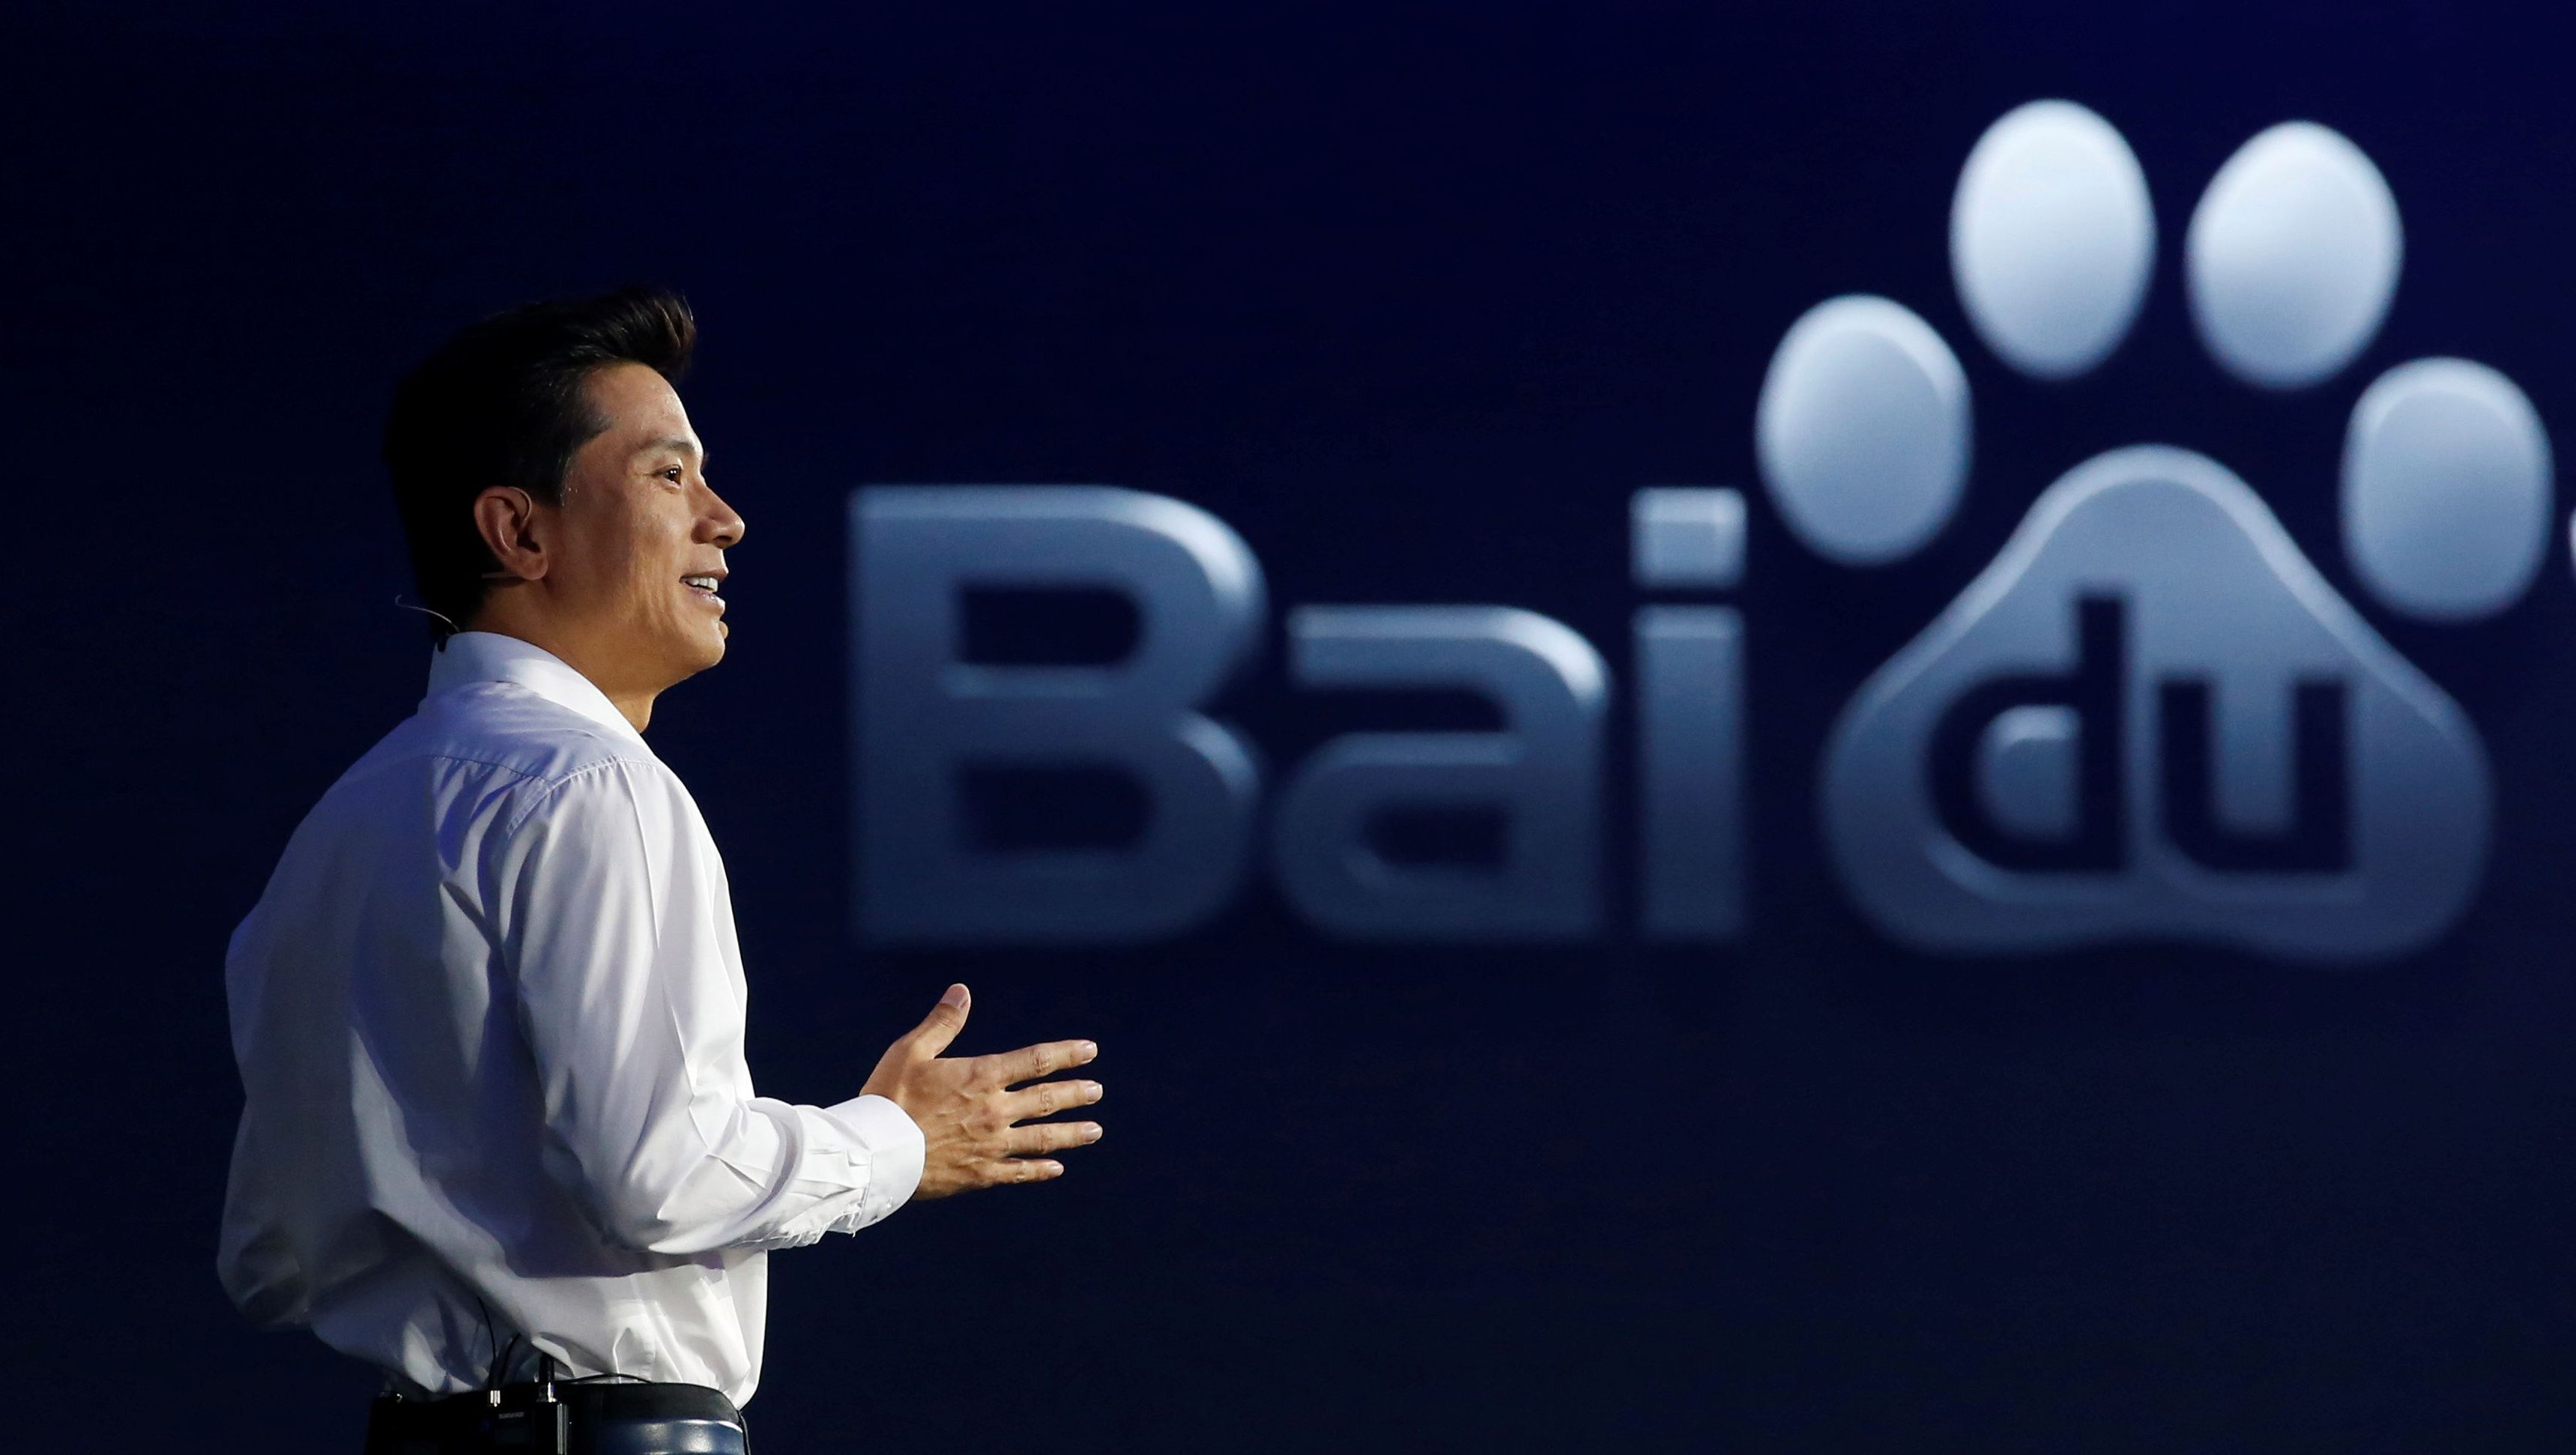 An obituary for Baidu argues China's vast internet has no